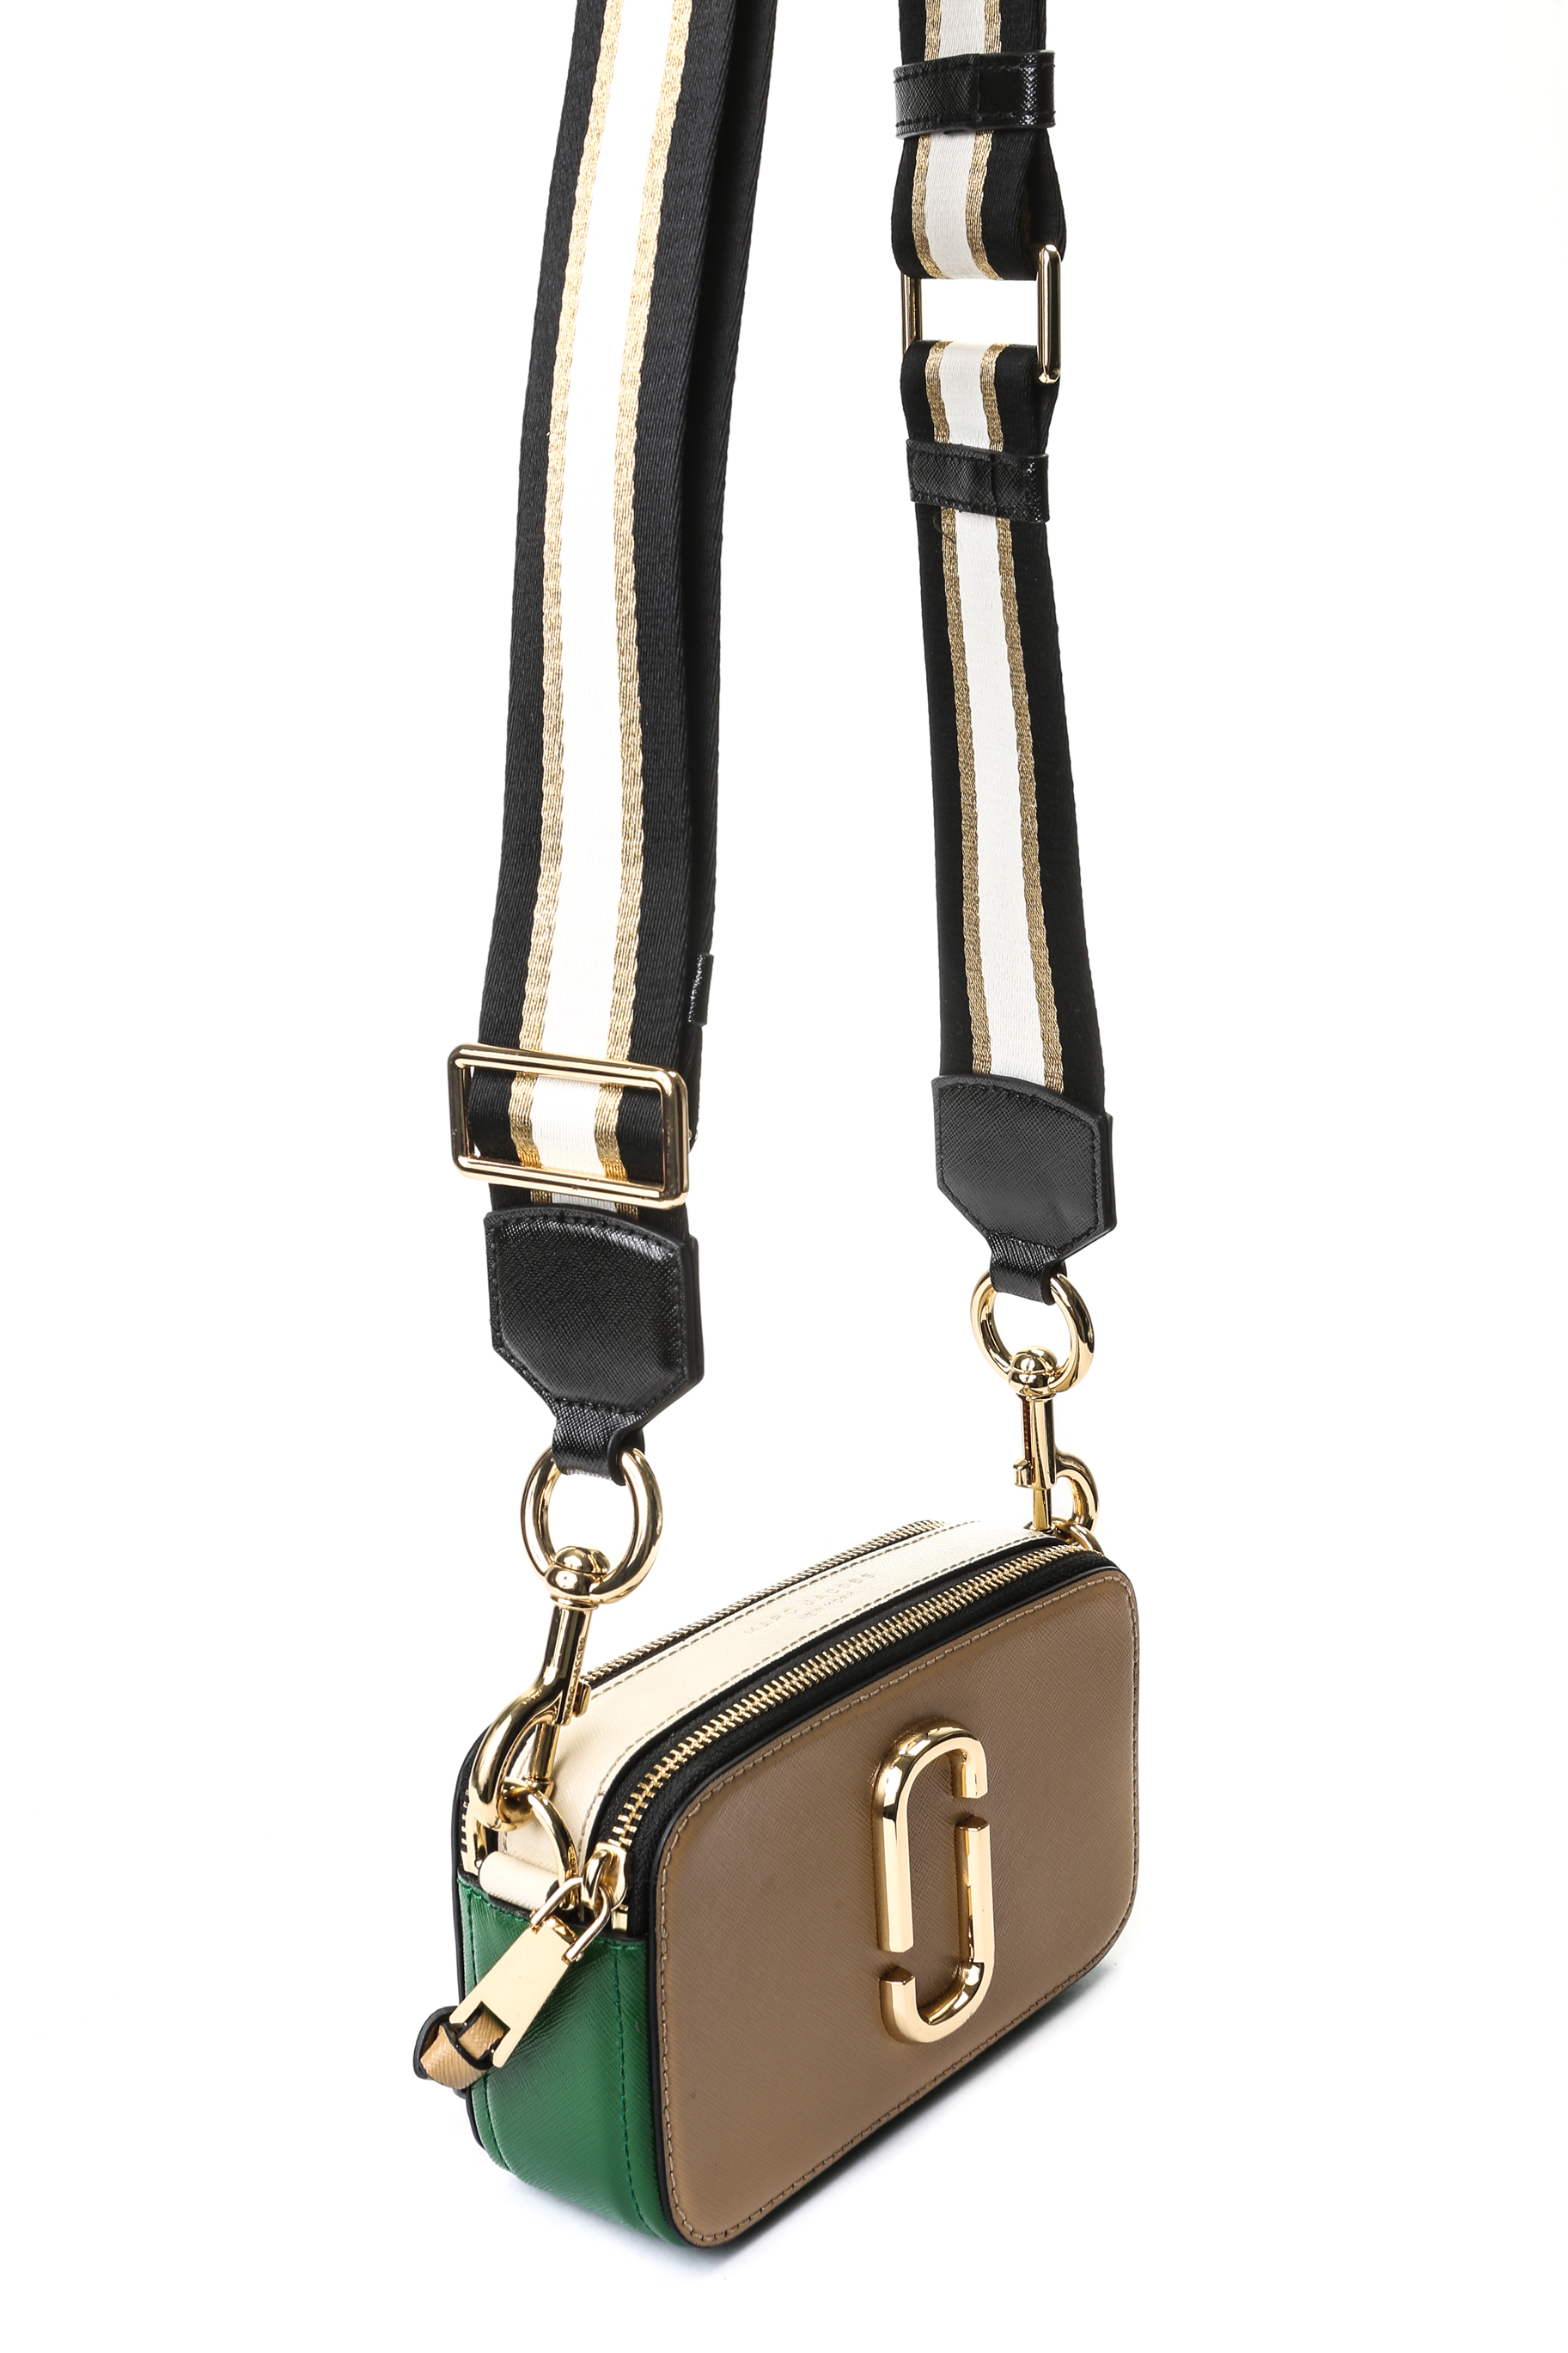 23cf229f3 Marc Jacobs Snapshot Camera Bag - Beige/ Green with Stripe Strap ...